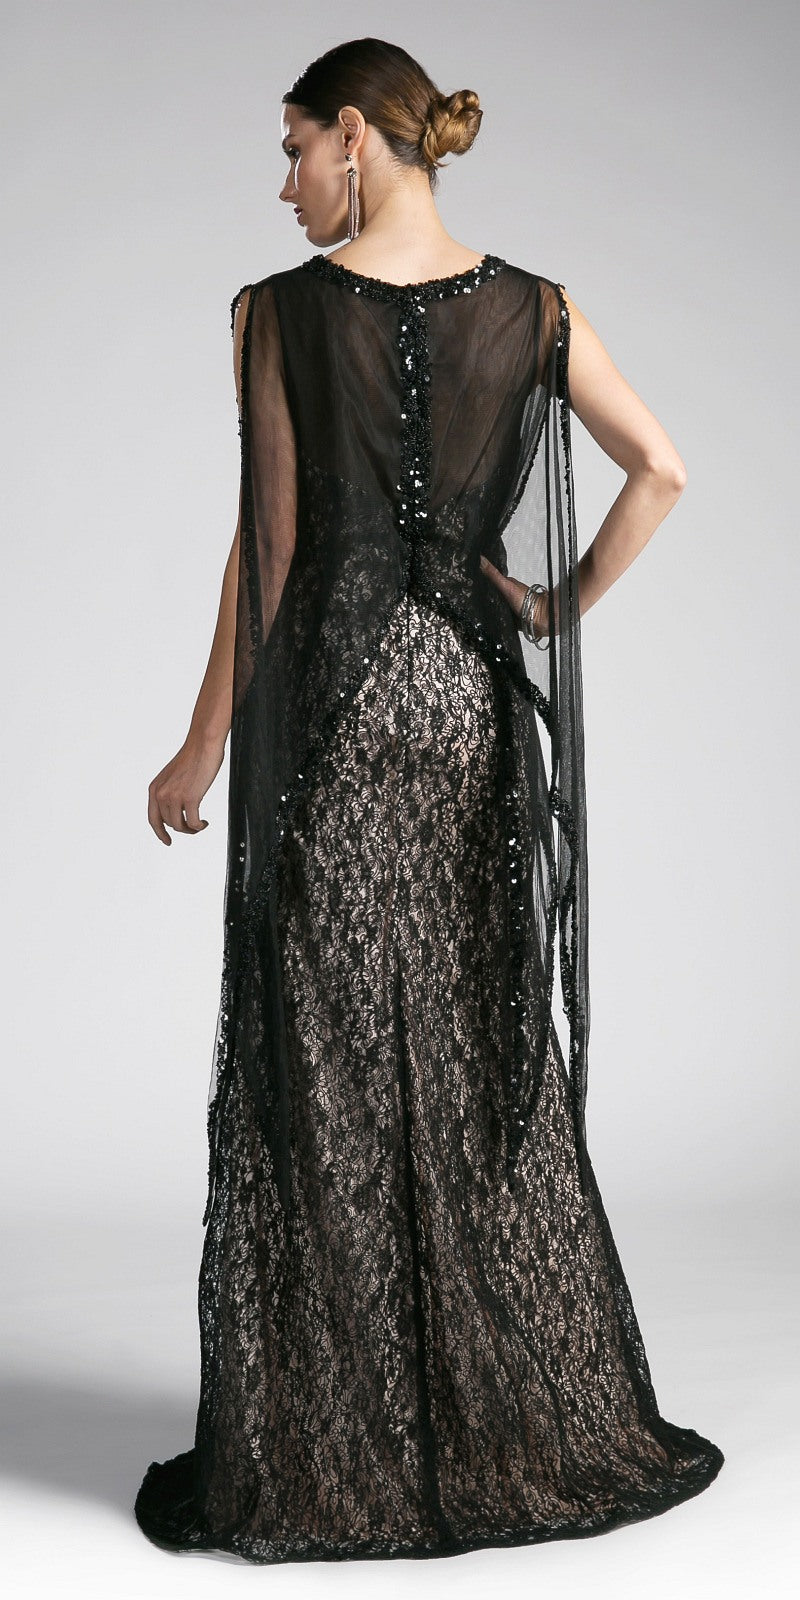 Cinderella Divine 5014 Black Lace Mermaid Evening Gown with Sheer ...